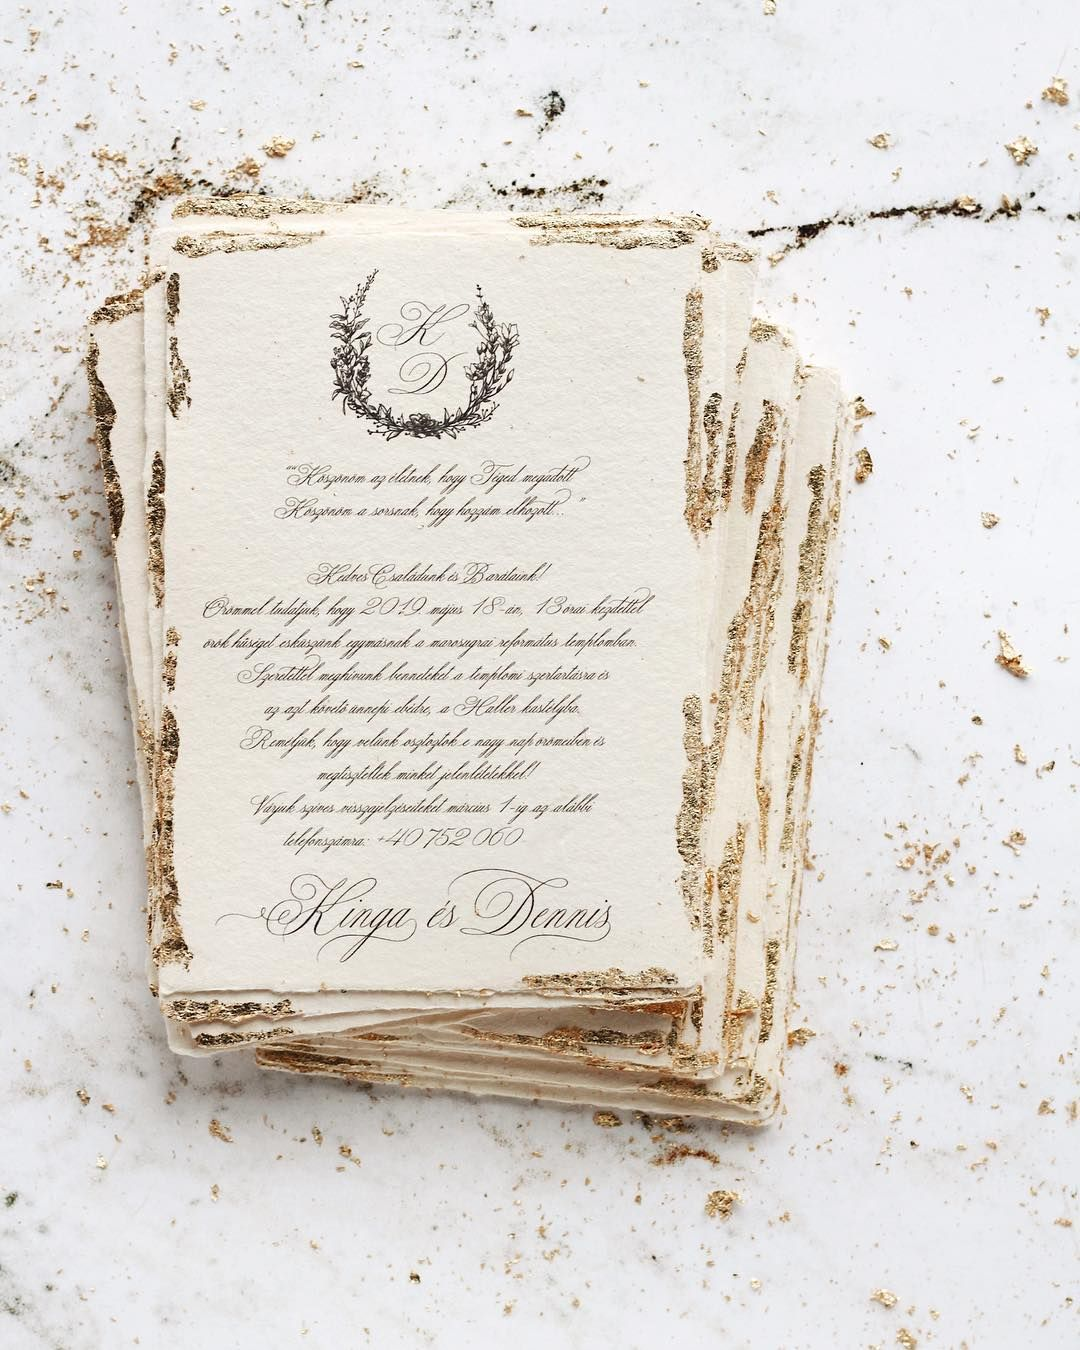 Gold Leaf Wedding Invitations On Handmade Paper With Deckled Edges By Papira Wedding Invitations Leaves Gold Foil Wedding Invitations Gold Wedding Invitations